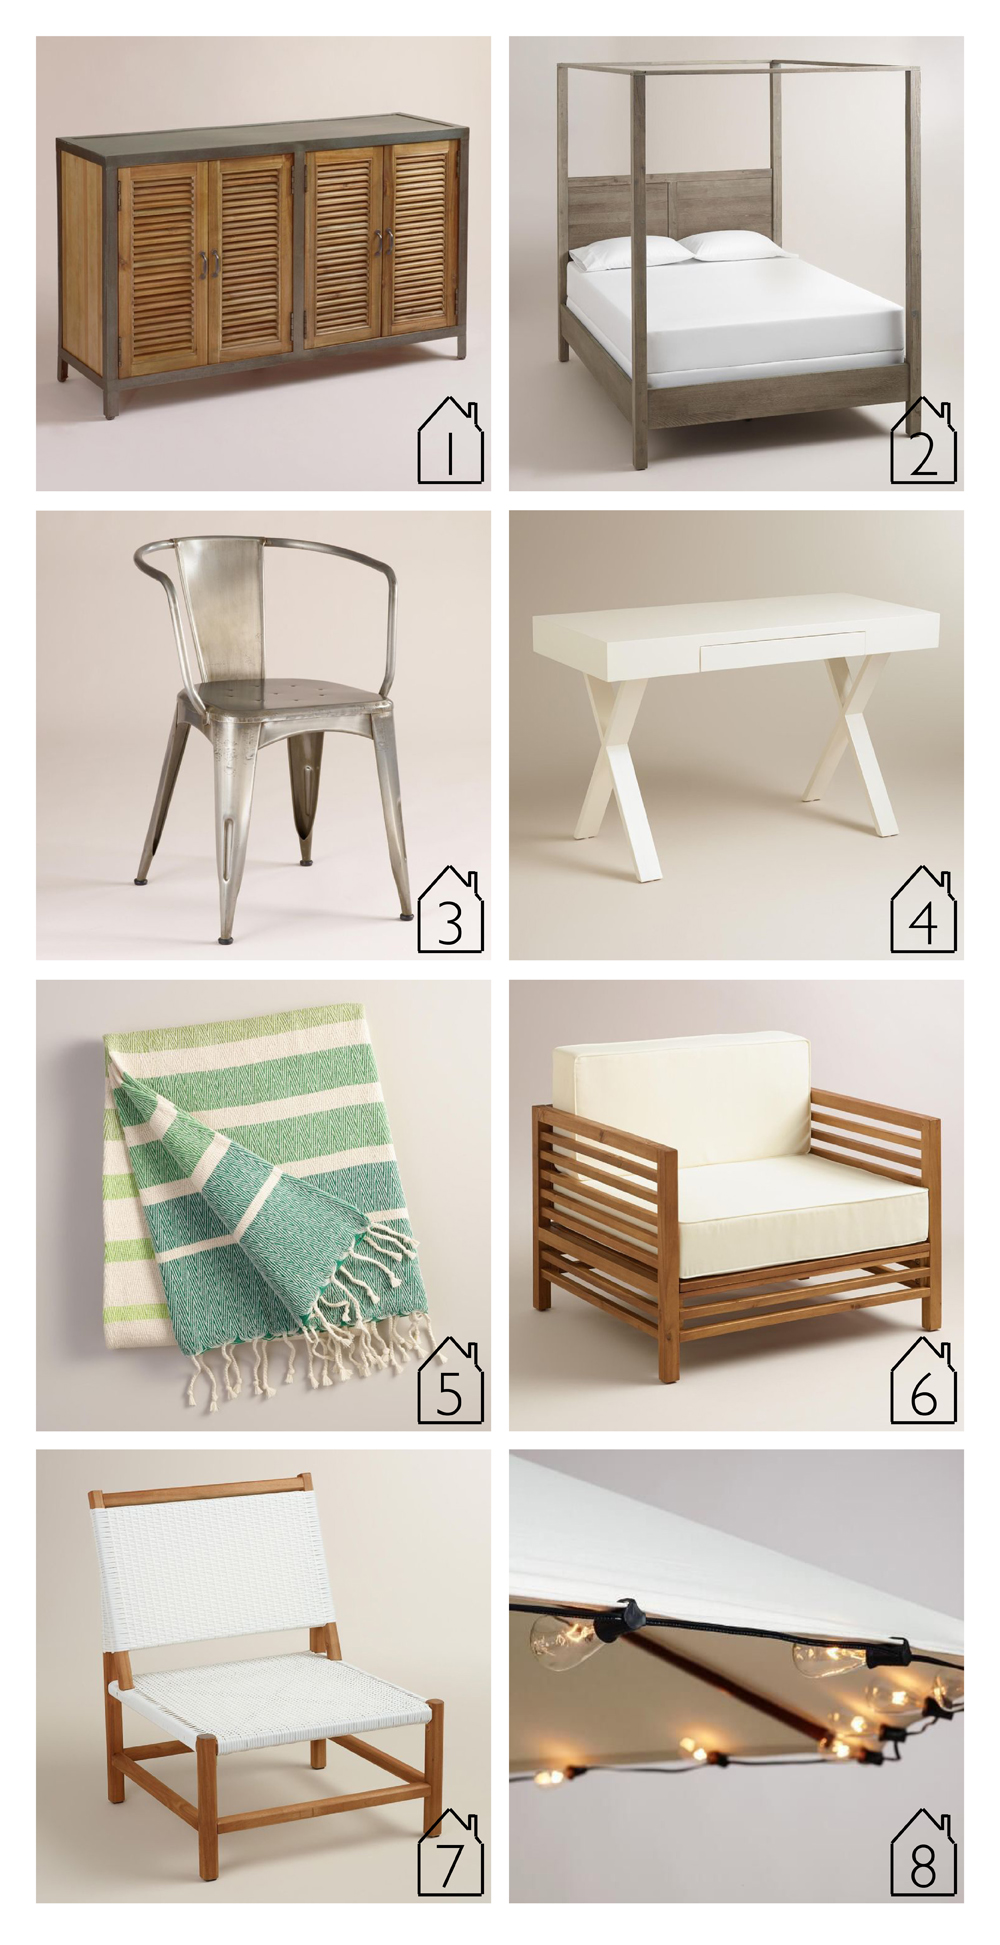 1. Double Shutter Doors Holbrook Sideboard 2. Gray Marlon Canopy Bed  3. Metal Jackson Tub Chair  4. Josephine Desk  5. Oversized Green Ombre Indoor-Outdoor Throw  6. Wood Praiano Outdoor Occasional Chair  7. Wood Sirmione Outdoor Chair  8. Edison Style String Lights